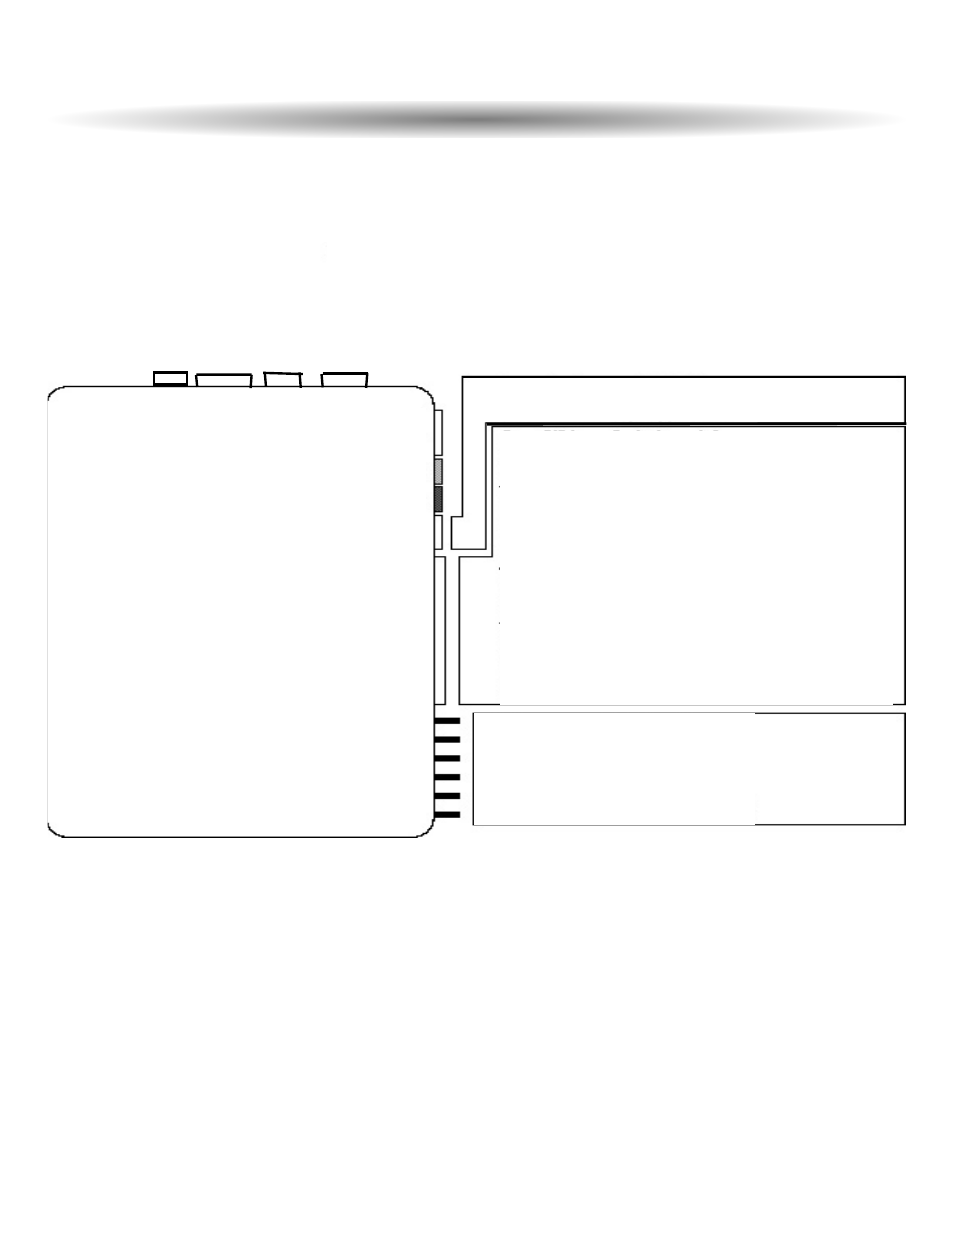 Galaxy 5000rs Dbp Series Wiring Diagram For Manual